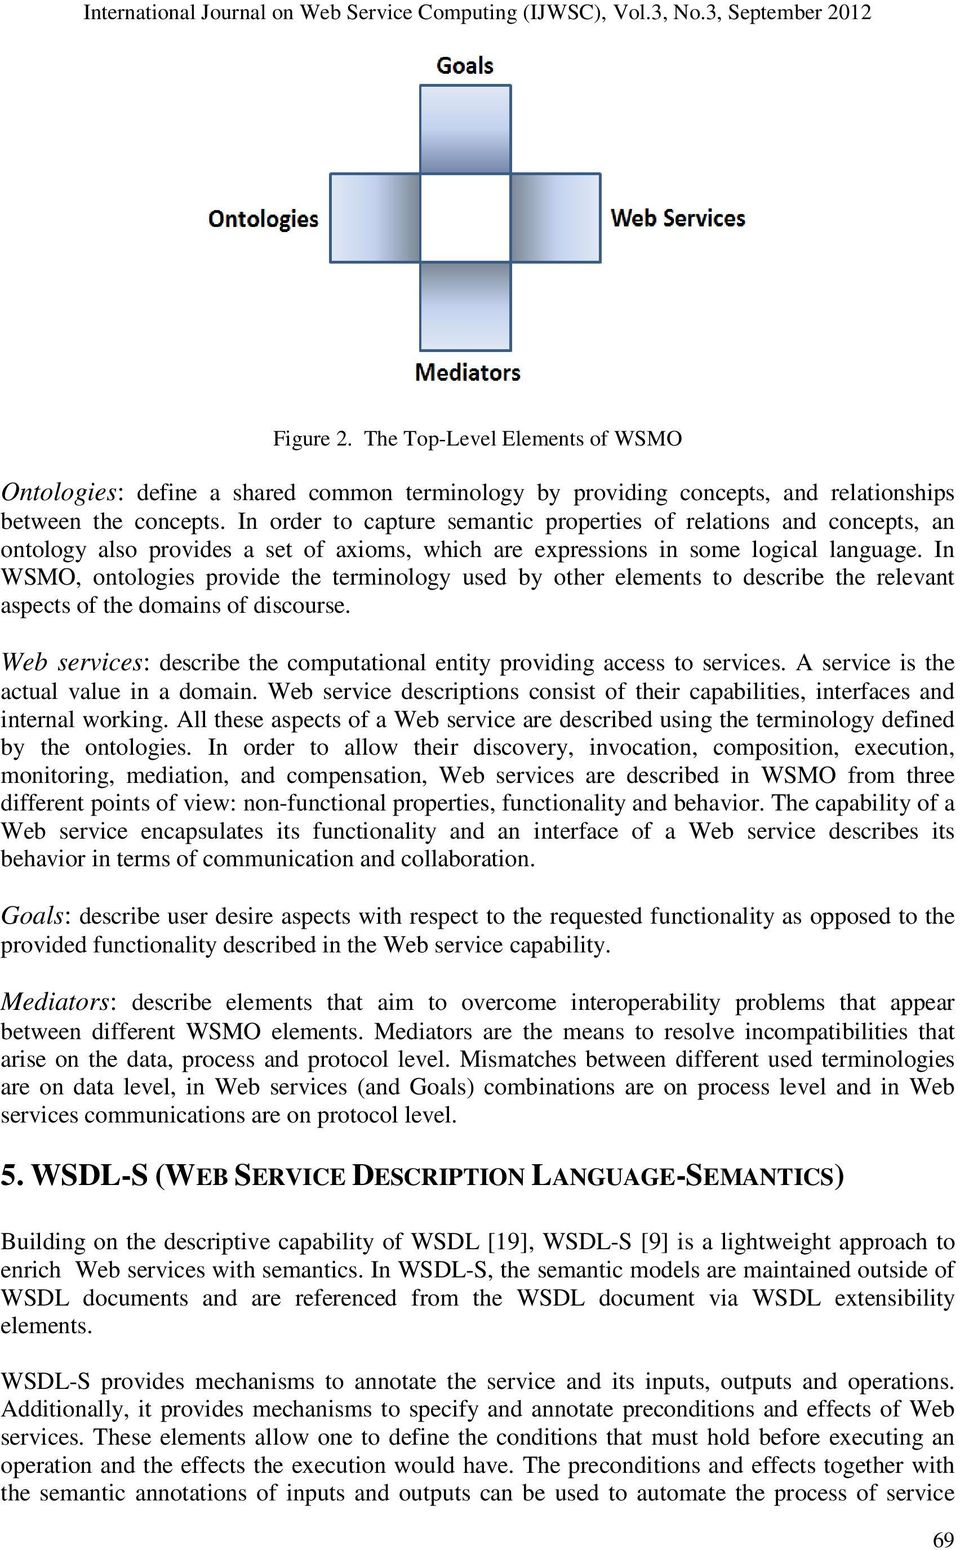 In WSMO, ontologies provide the terminology used by other elements to describe the relevant aspects of the domains of discourse.